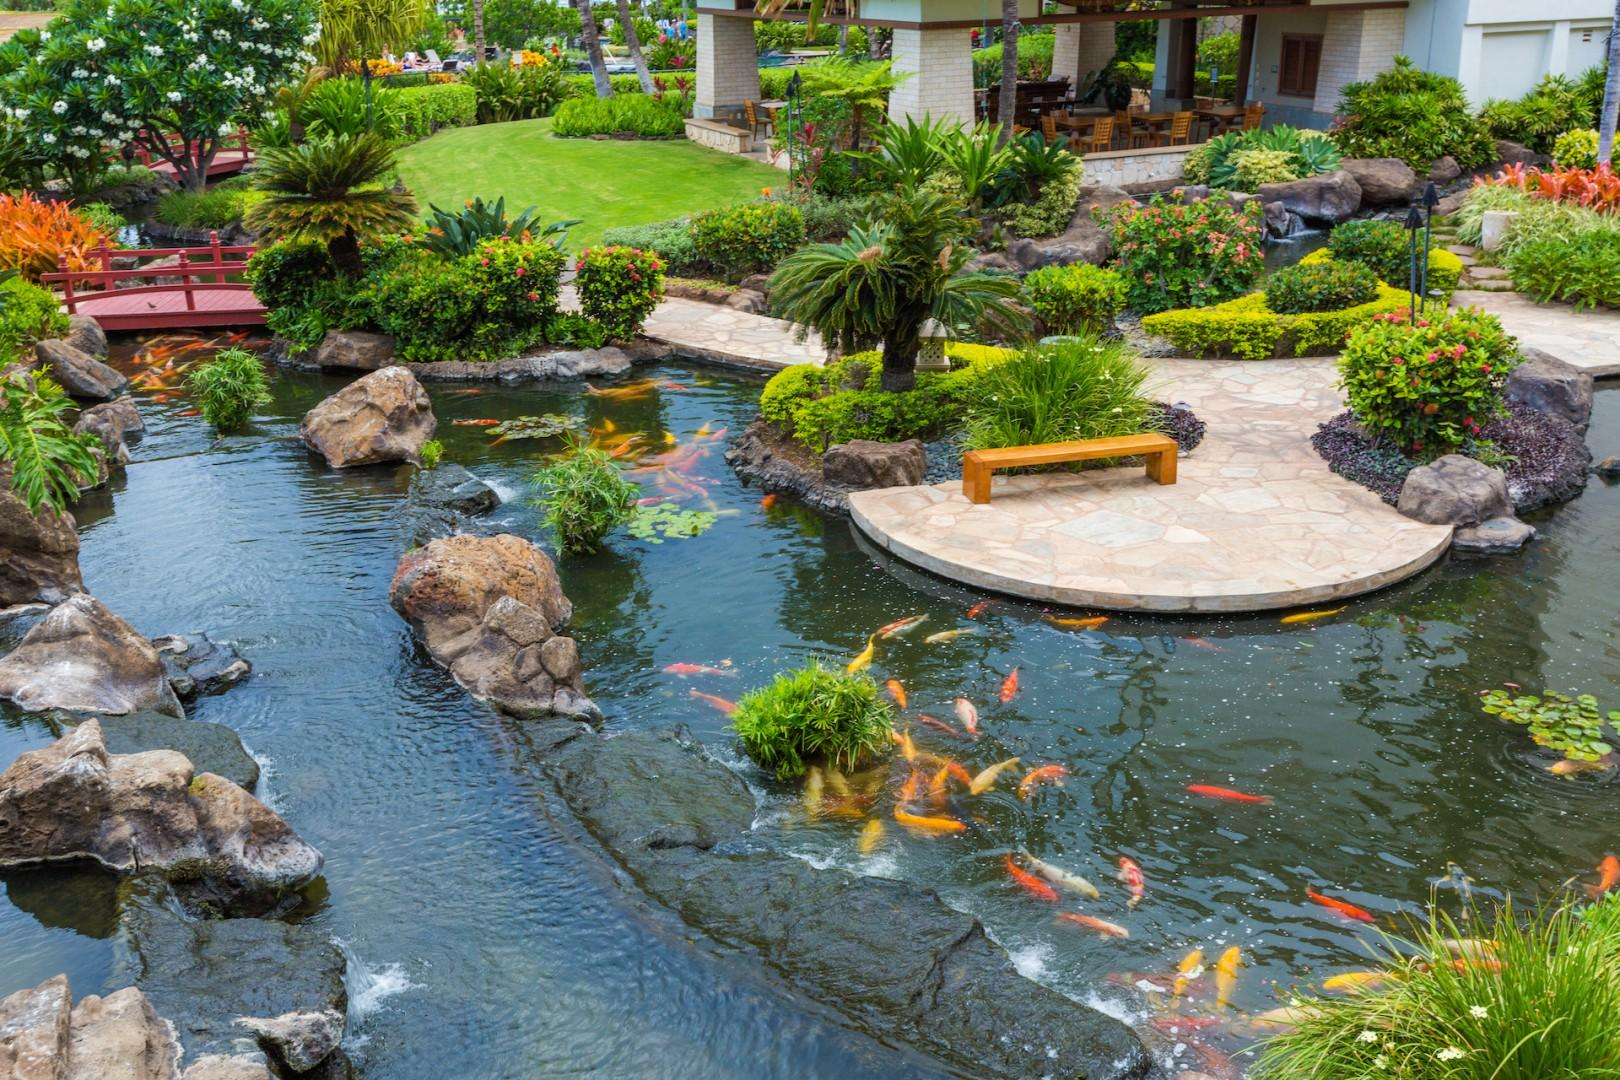 View of the Koi ponds and garden area from the Villa lanai.